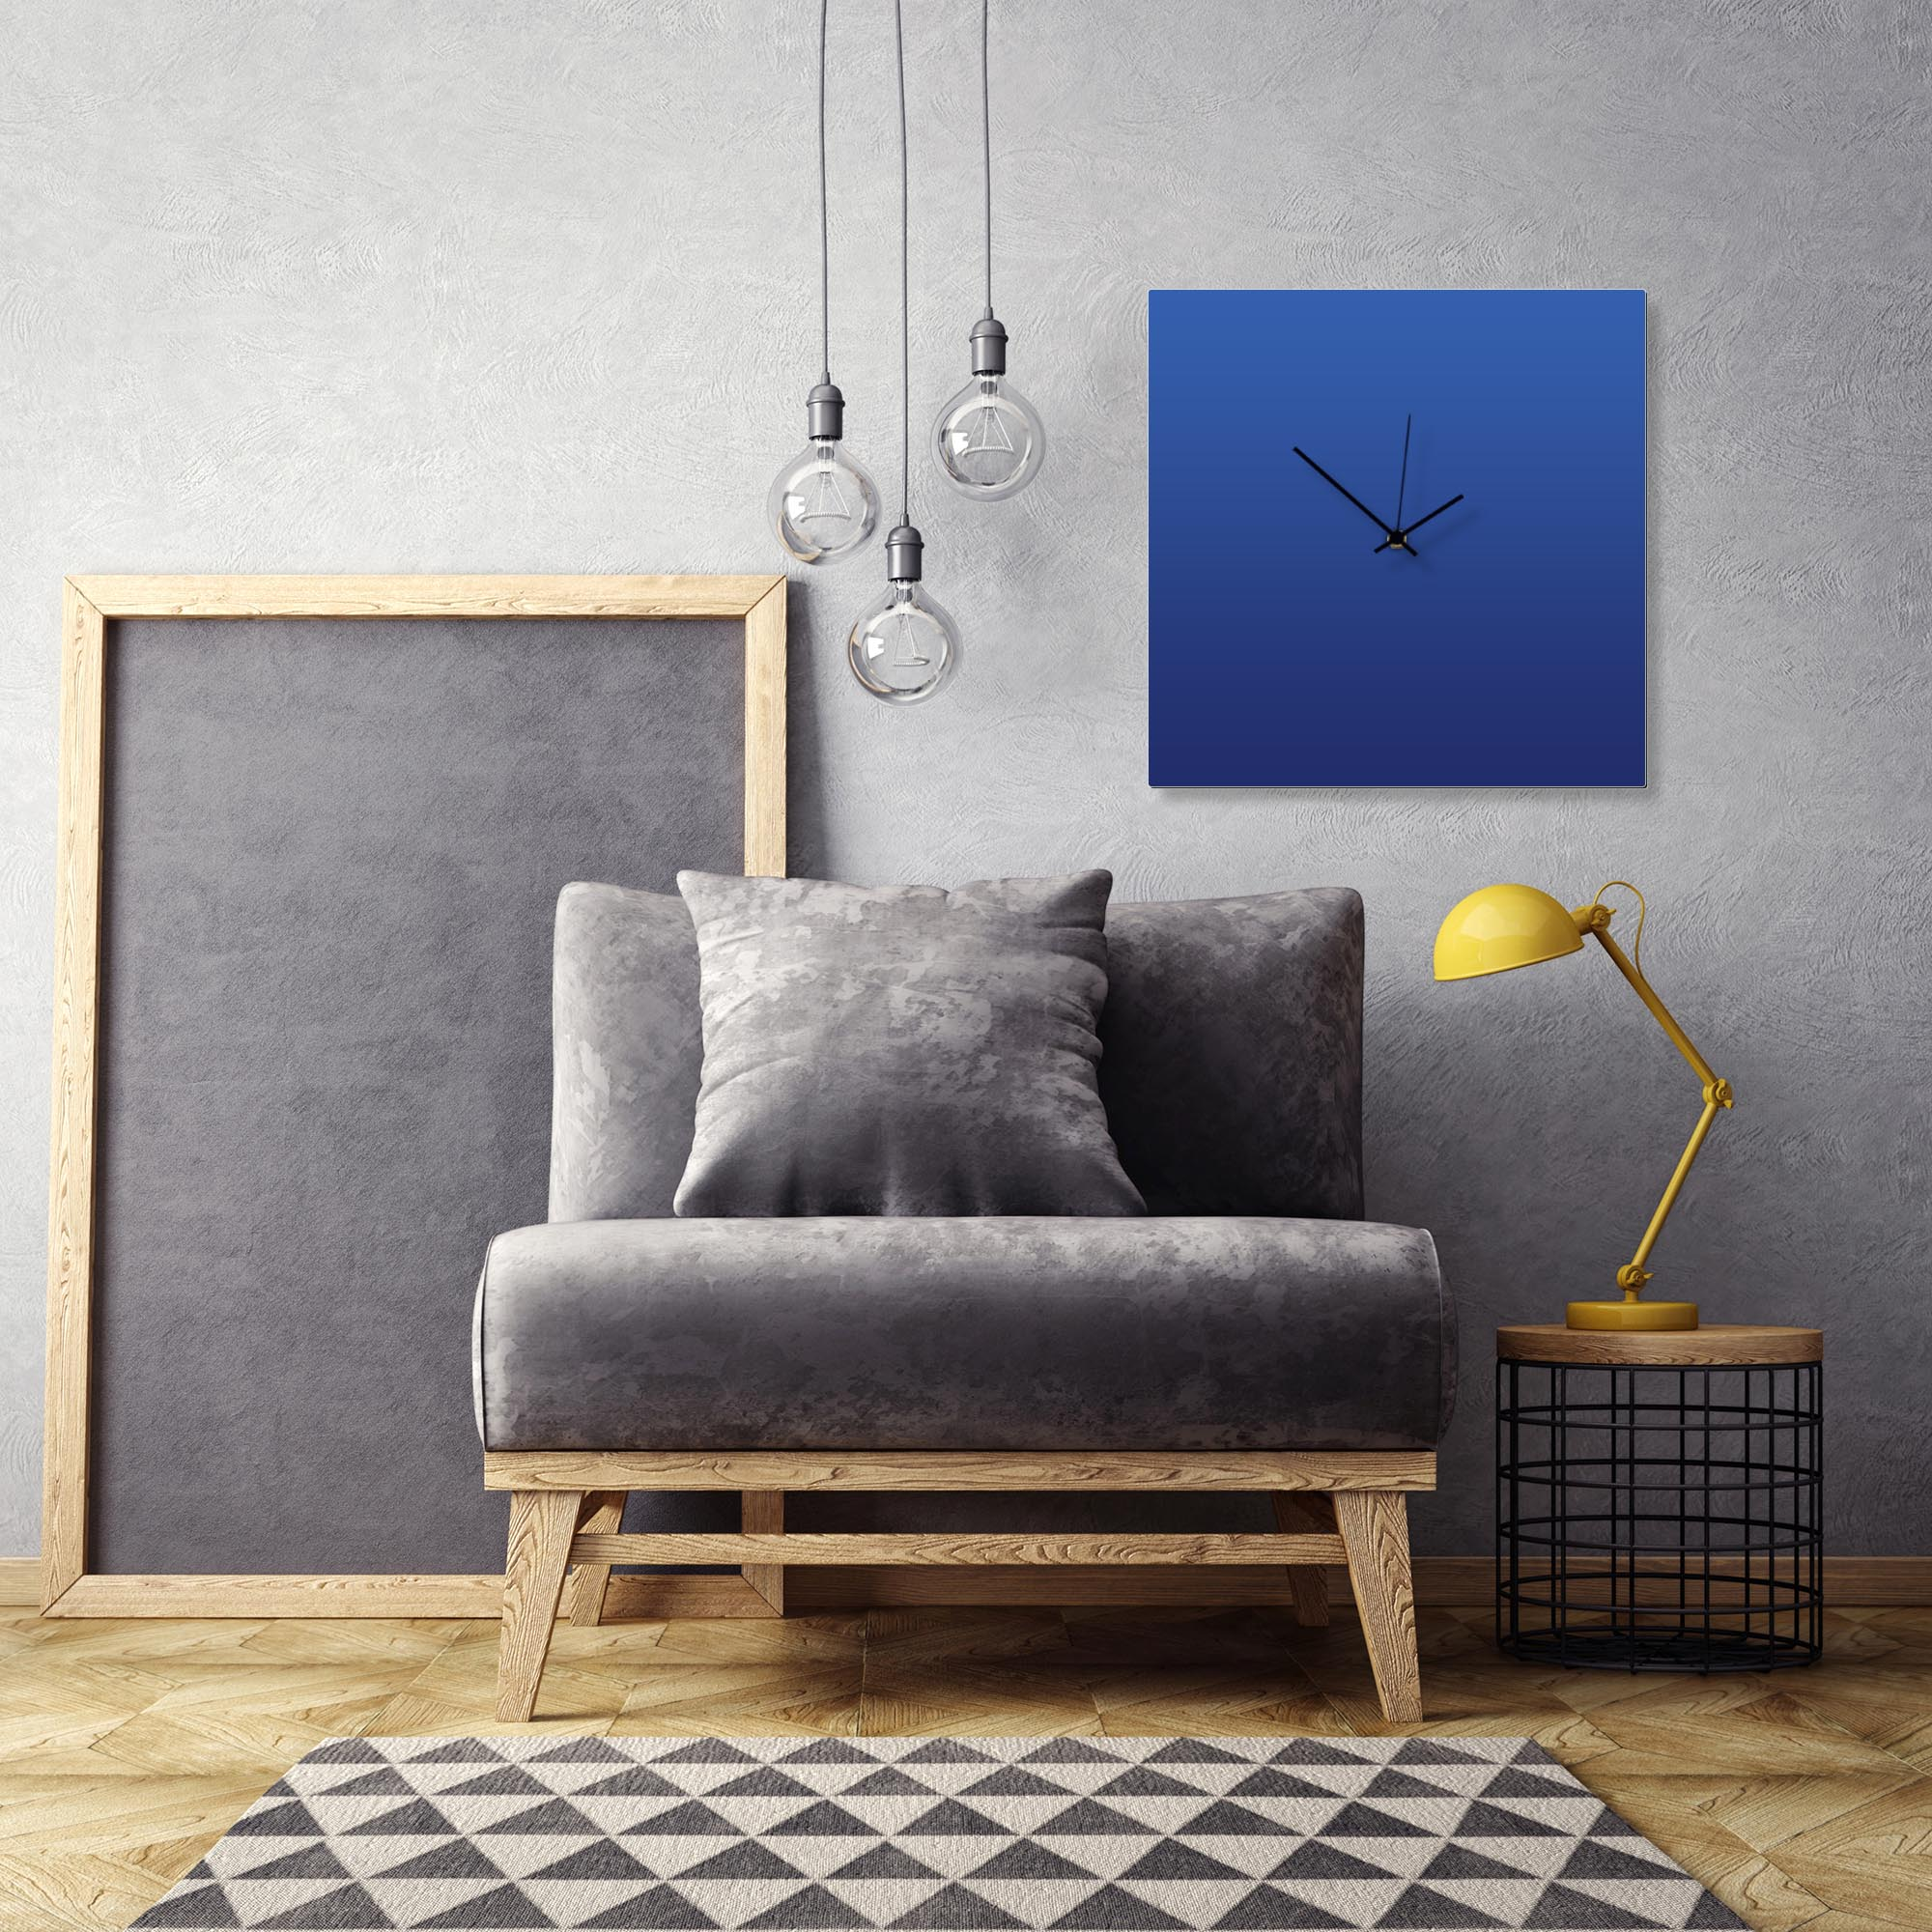 Blueout Black Square Clock Large by Adam Schwoeppe Contemporary Clock on Aluminum Polymetal - Alternate View 1